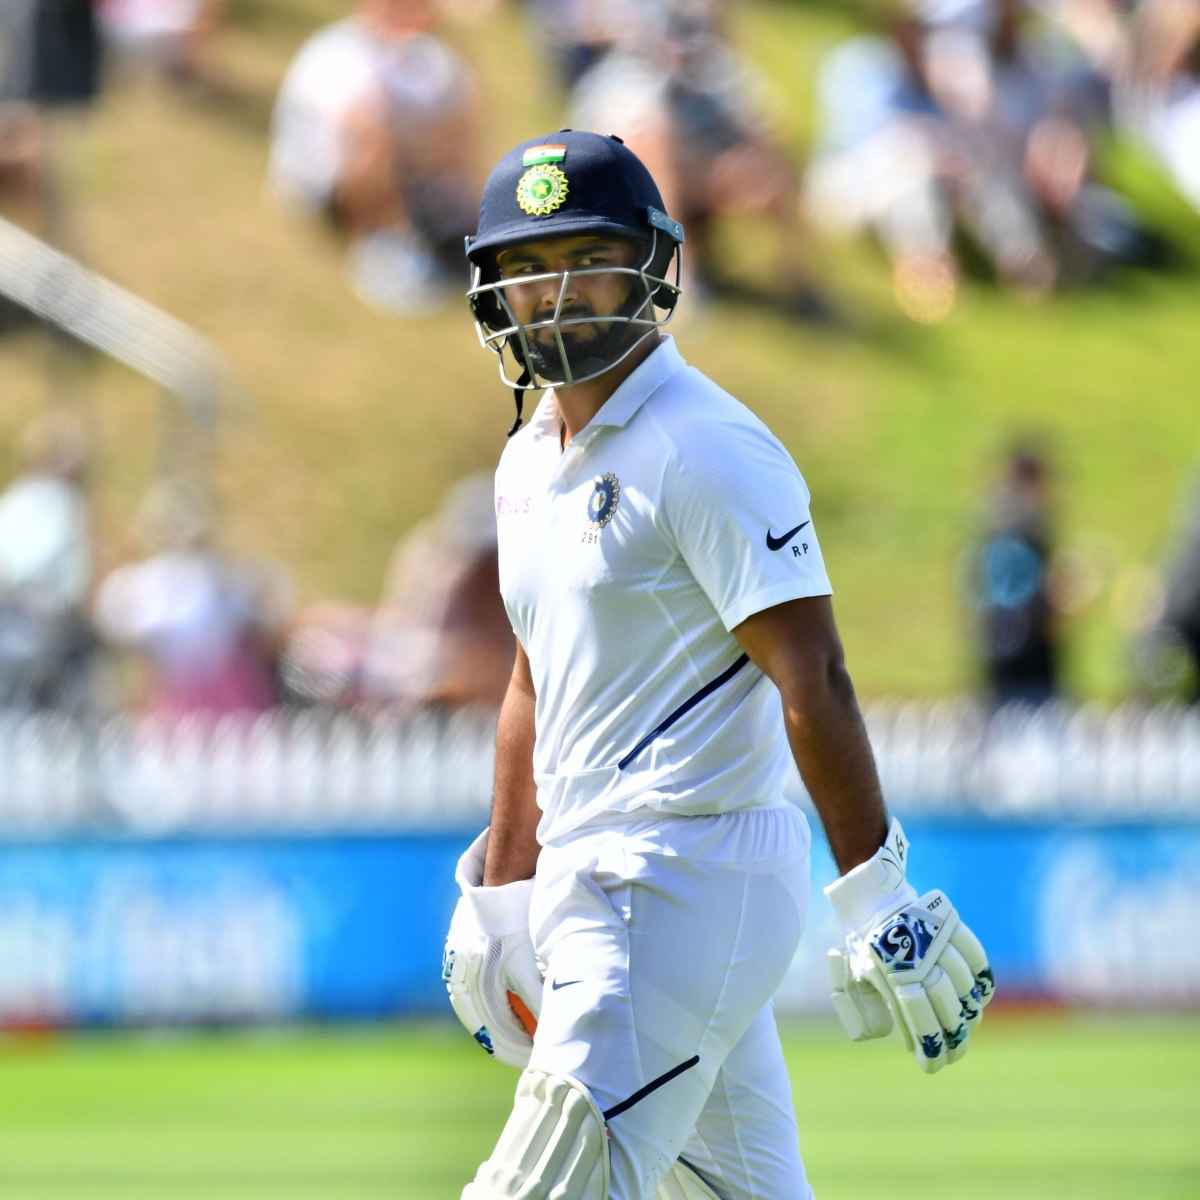 'Always finds new ways to get out': Twitter trolls Rishabh Pant after dismal show against New Zealand